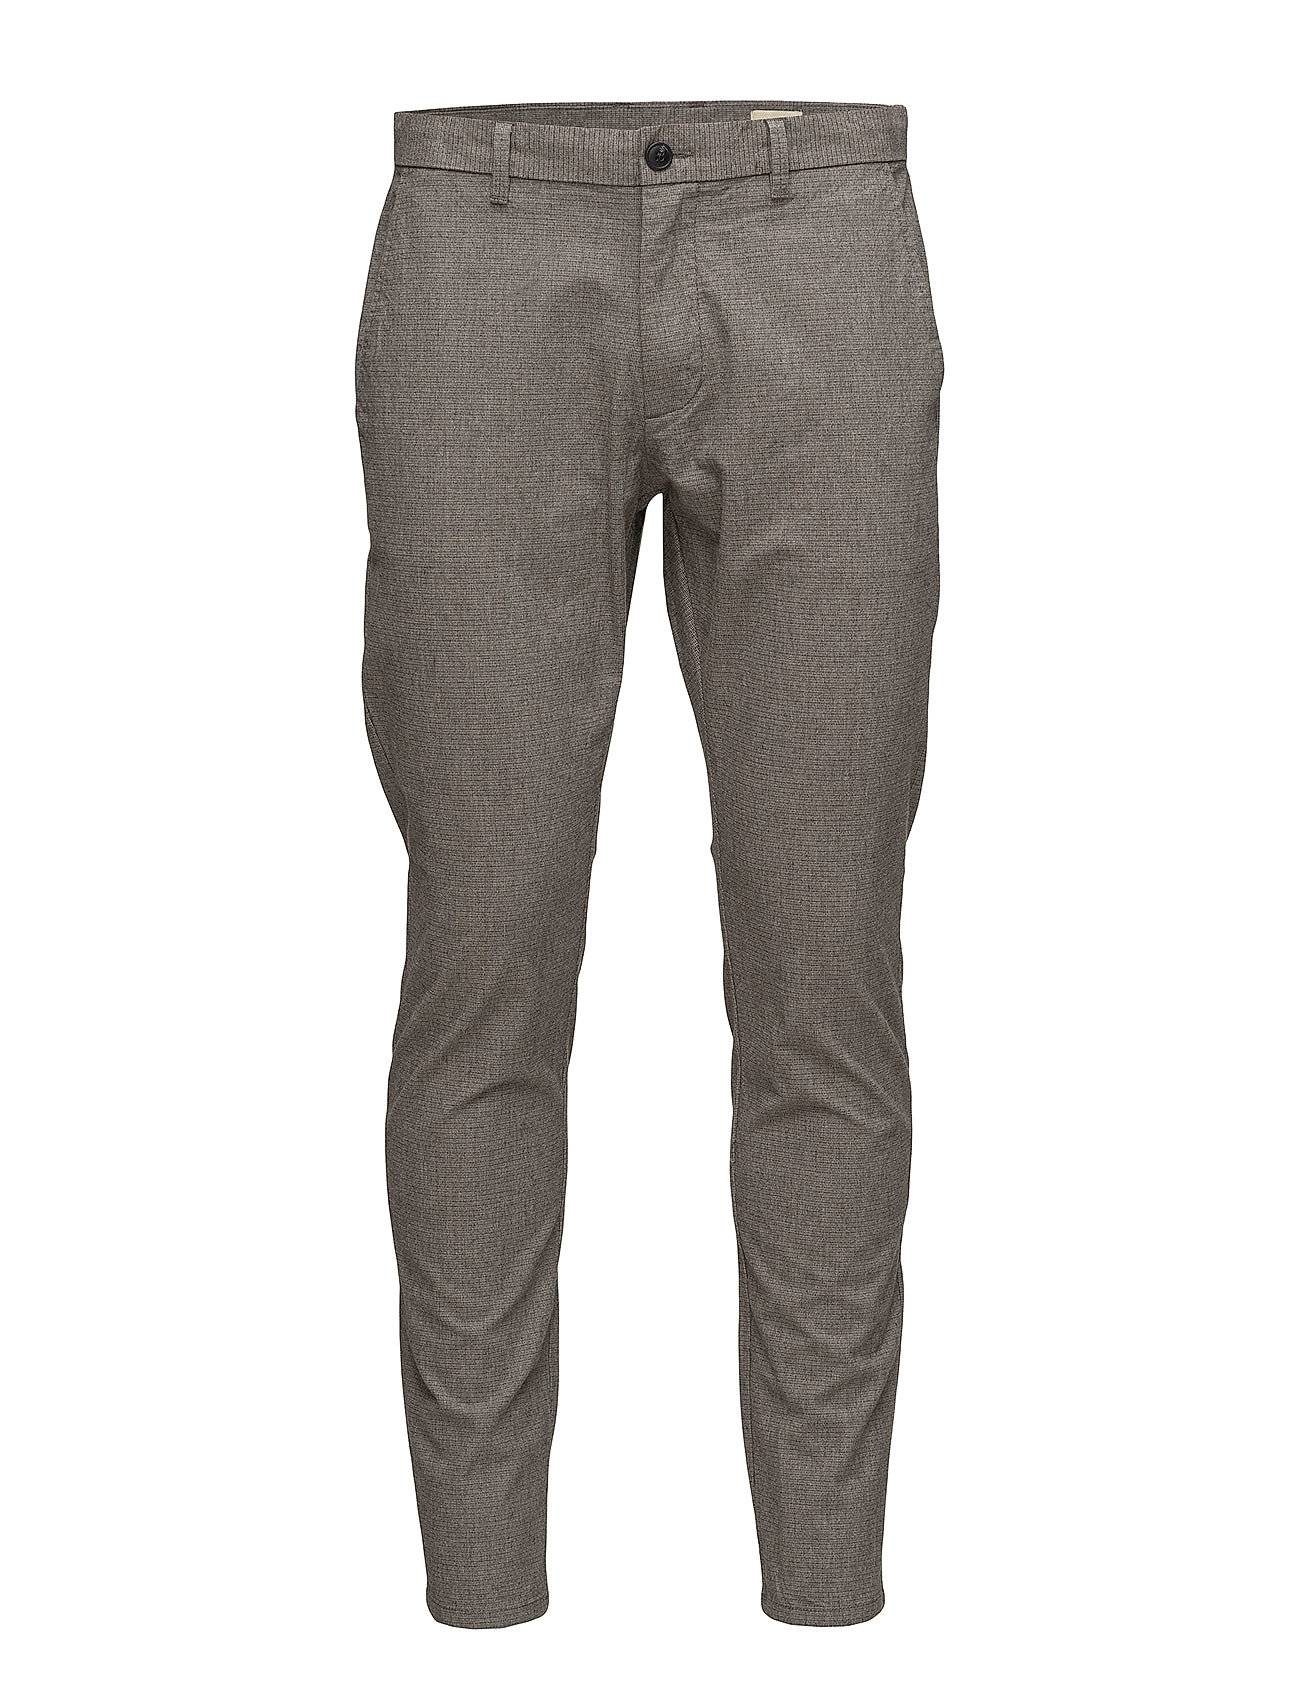 Selected Homme Shharval Sand Mix Slim St Pants Noos